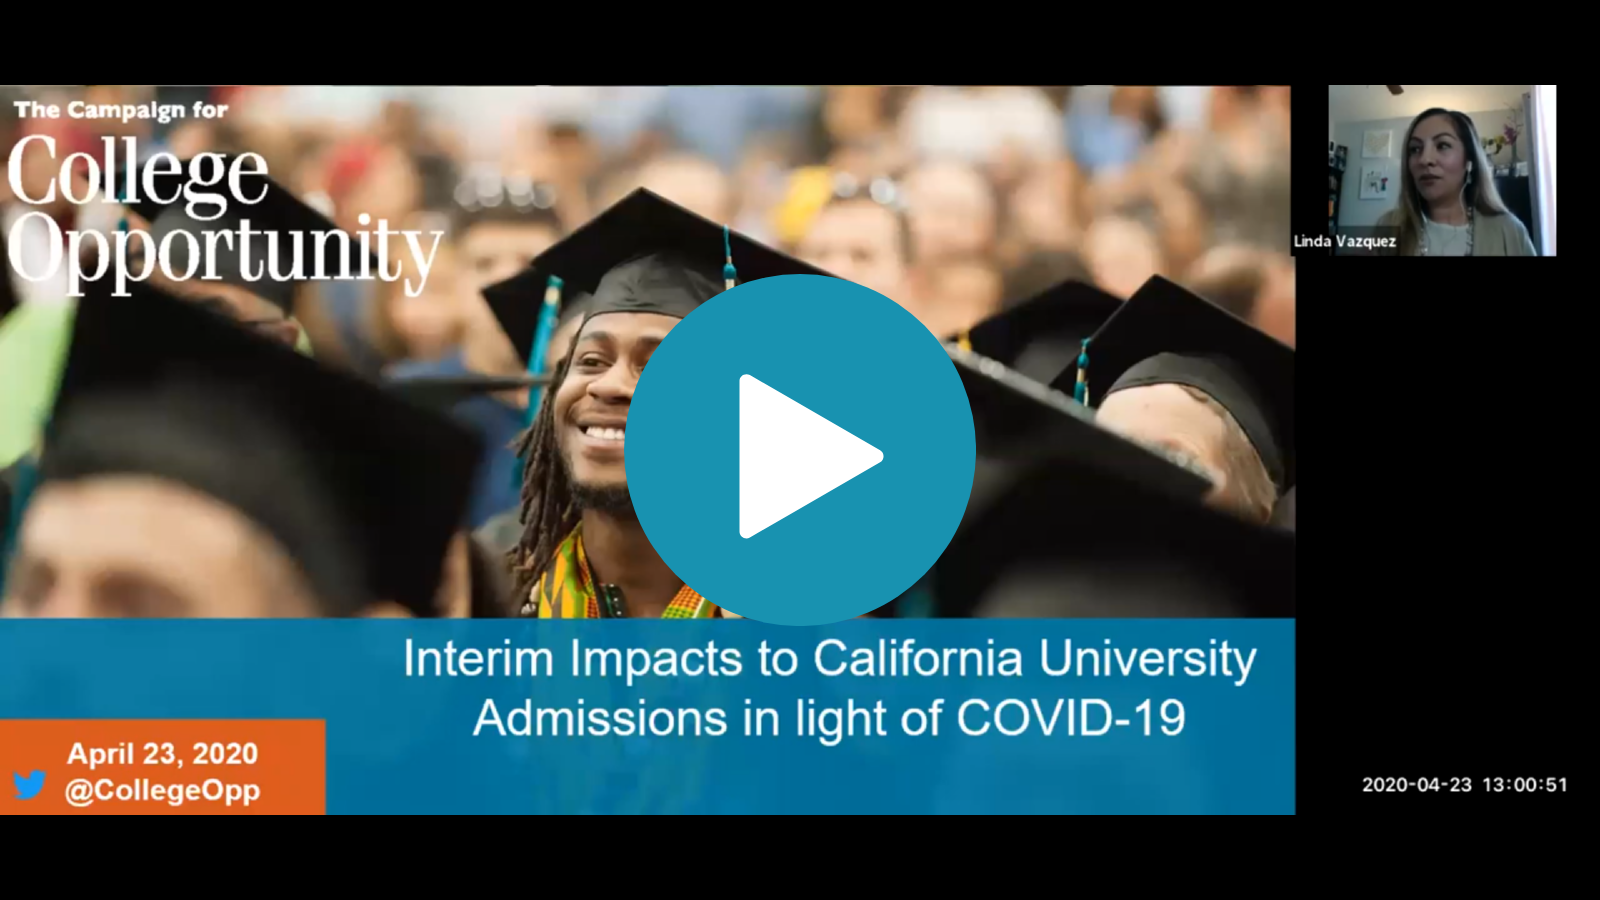 Interim Impacts to CA University Admissions